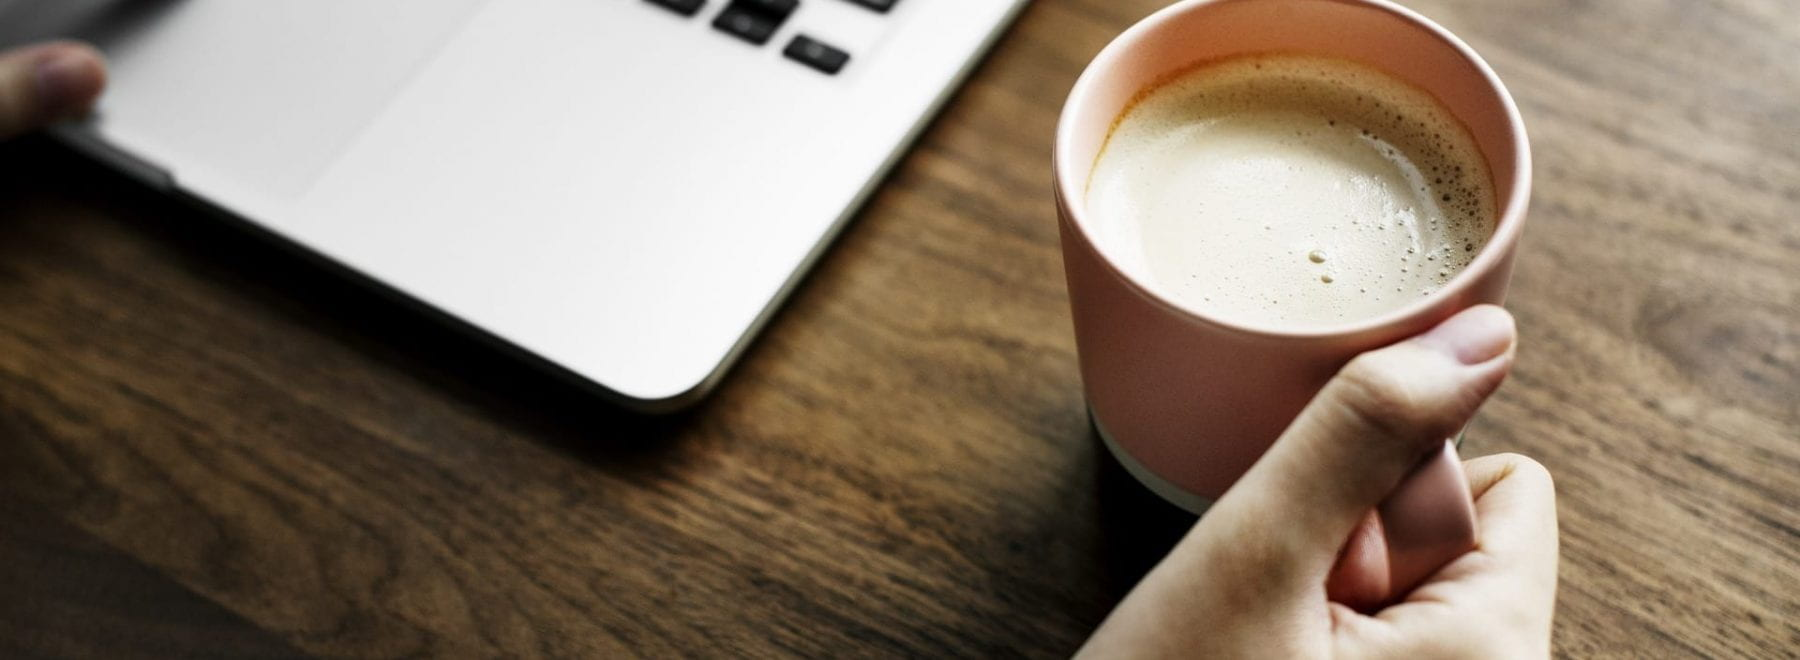 coffee and laptops